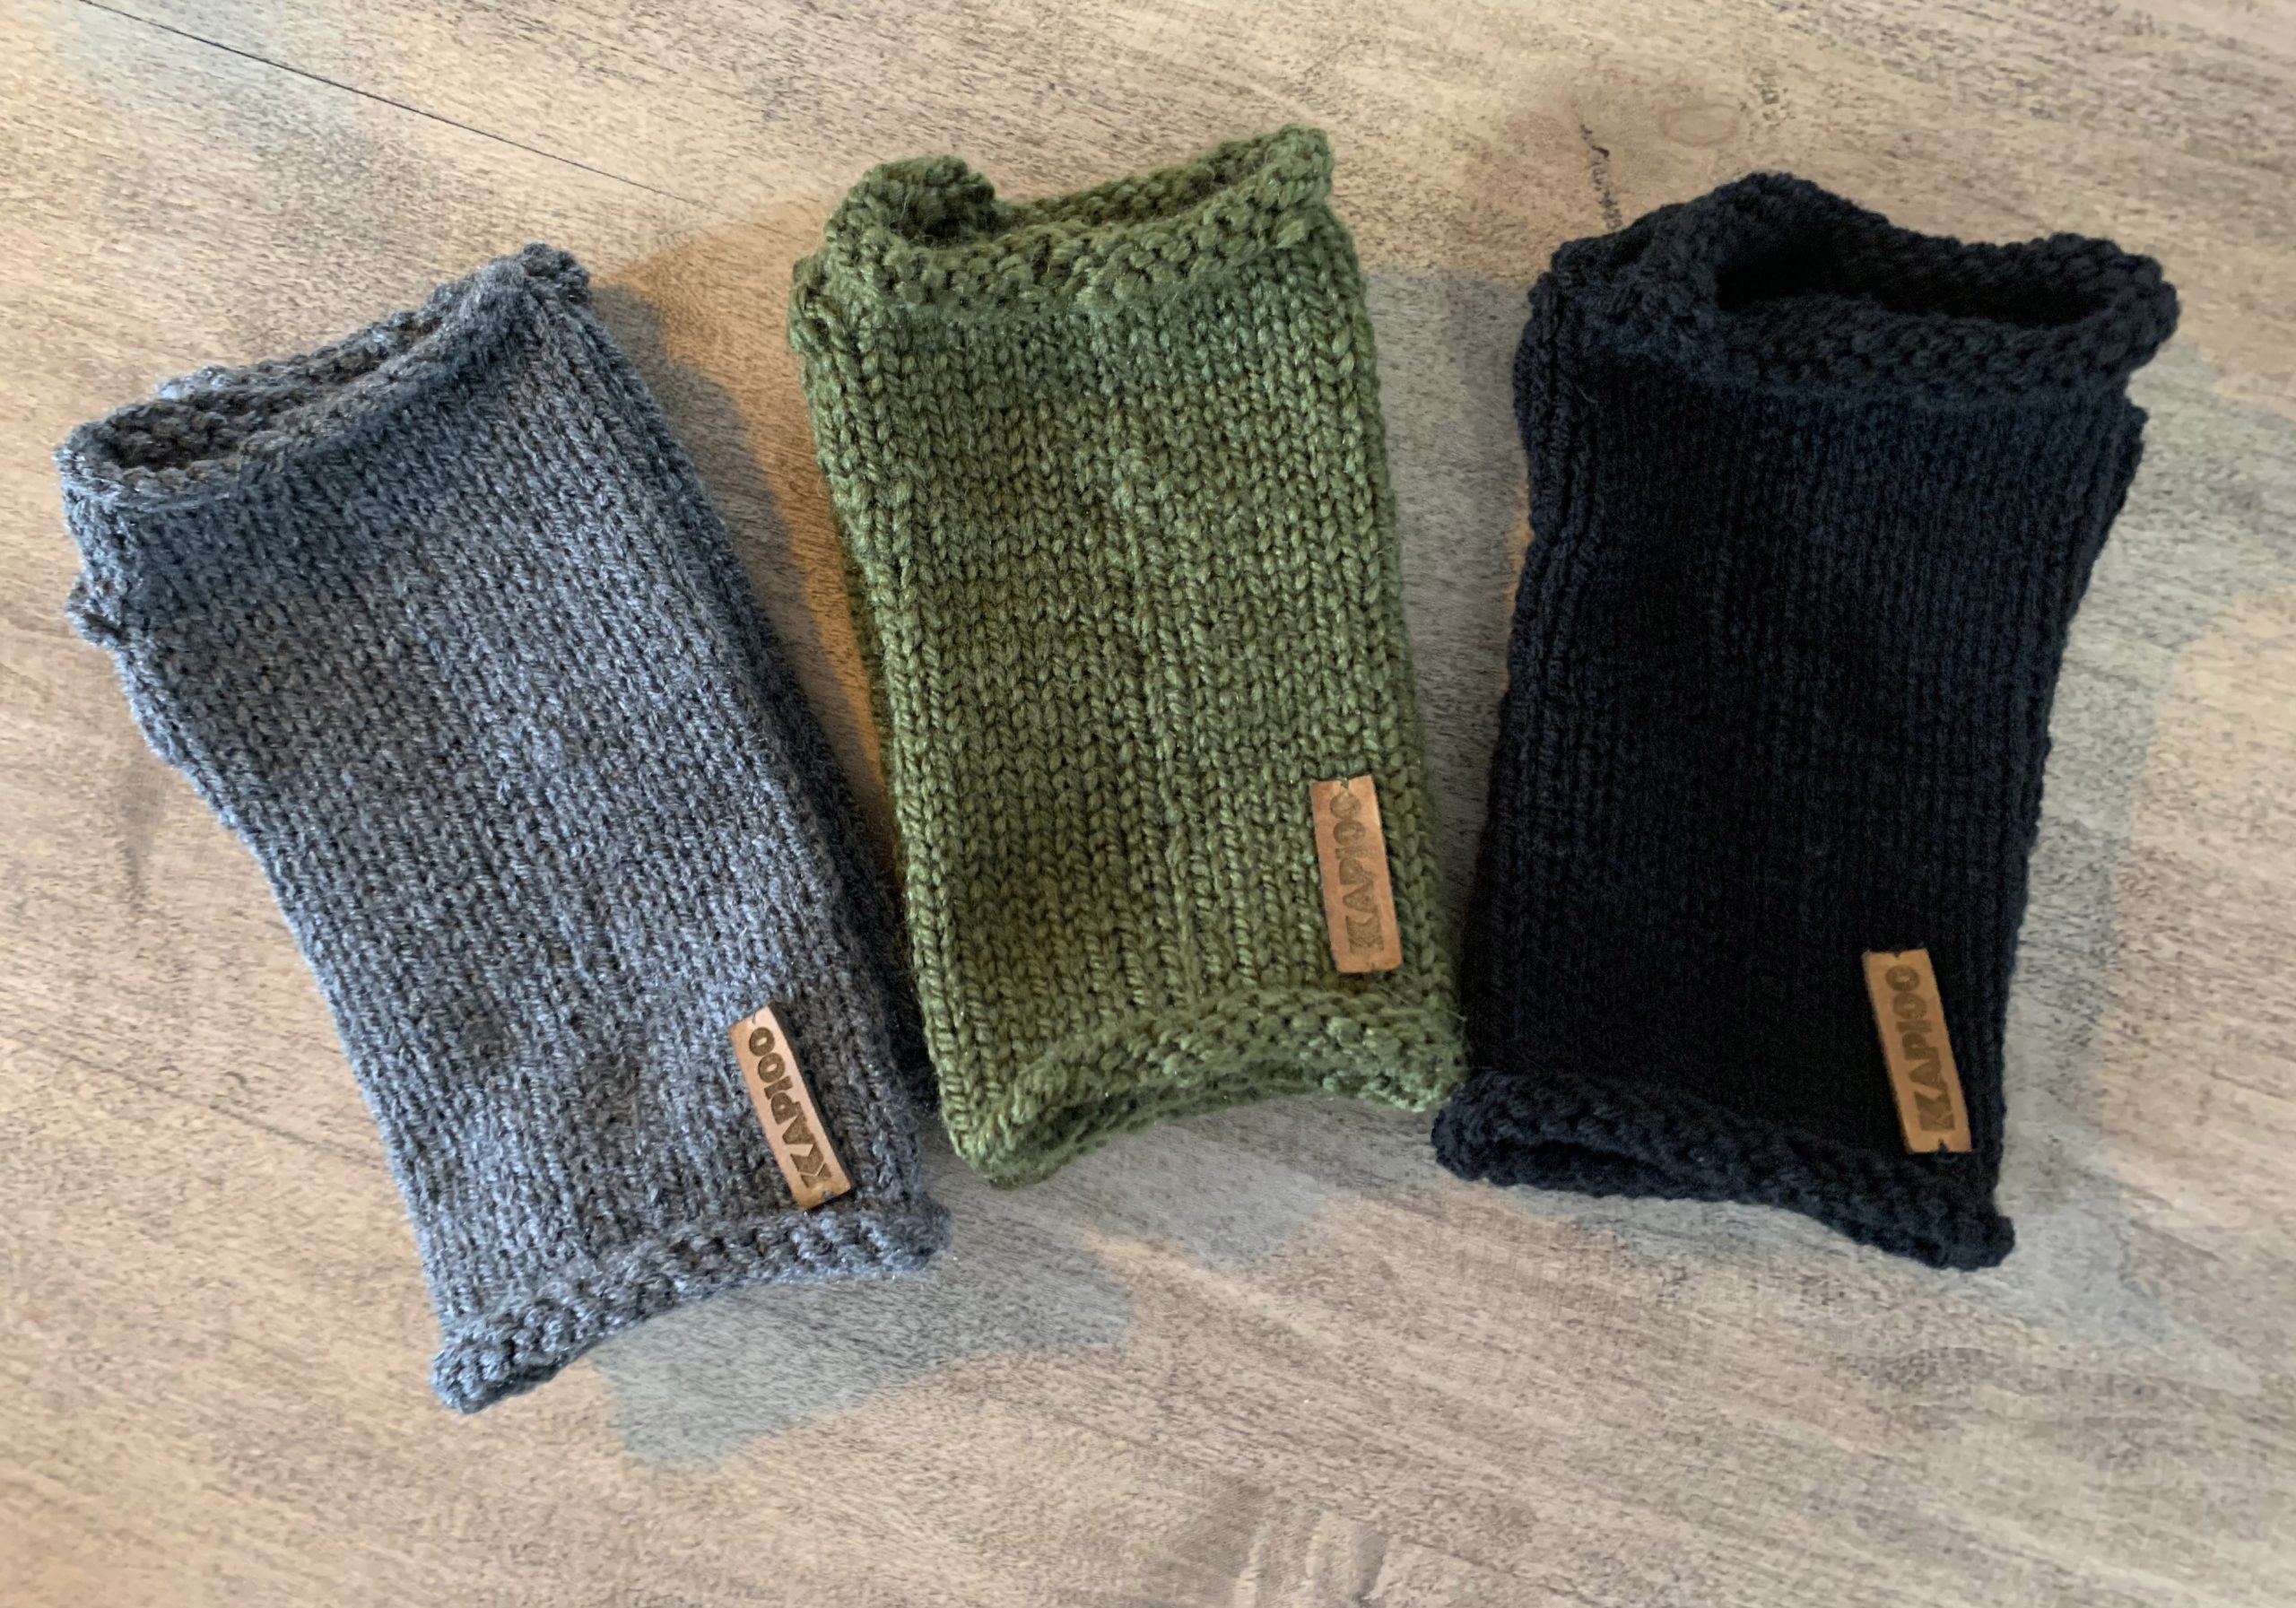 All 3 color fingerless gloves